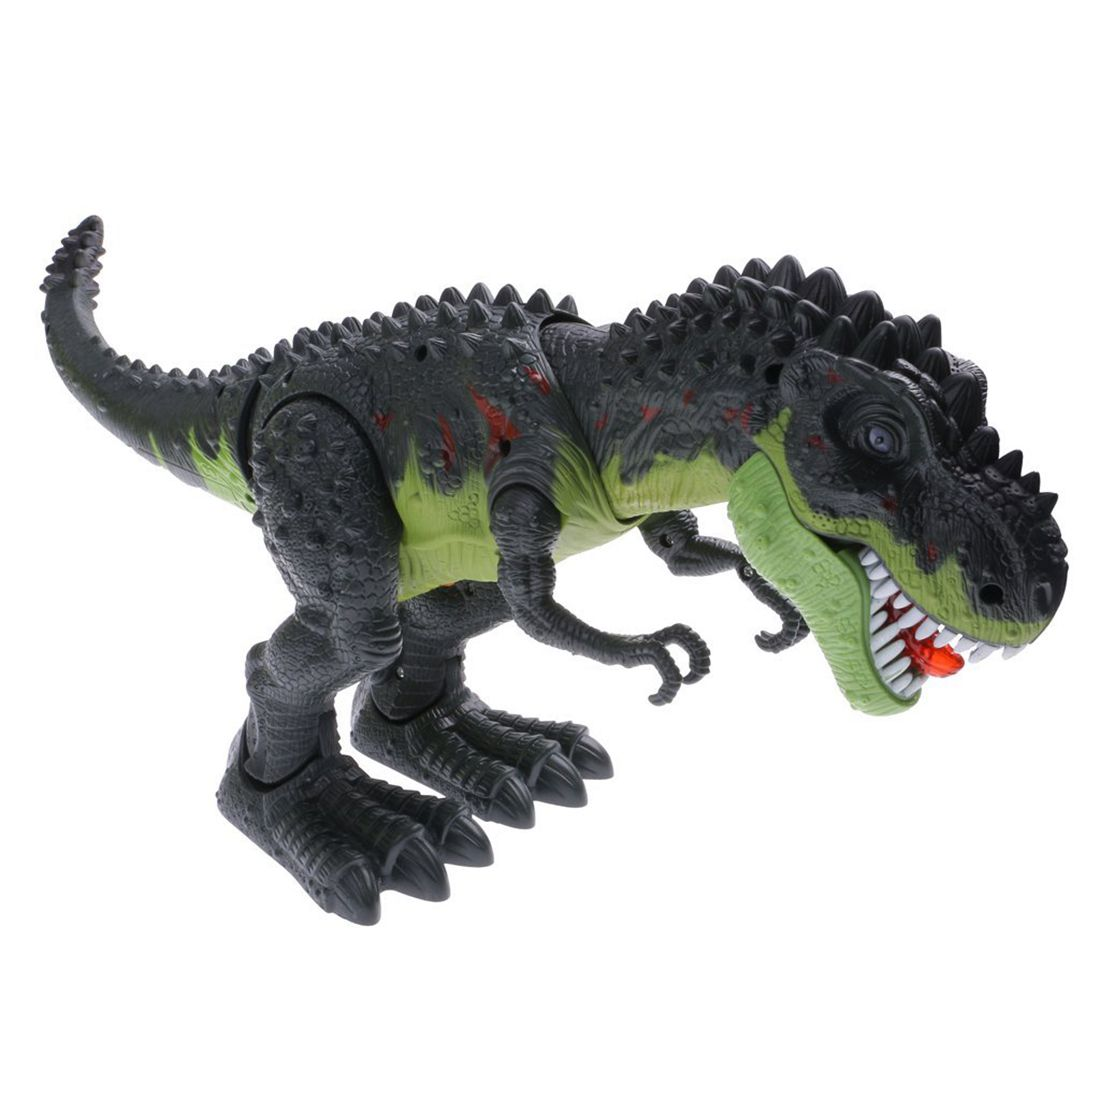 Cool Electric Walking Dinosaur Toy Robot w/ Sound Light Moving Kids Gift #2 cool funny bomb shape coin bank w sound